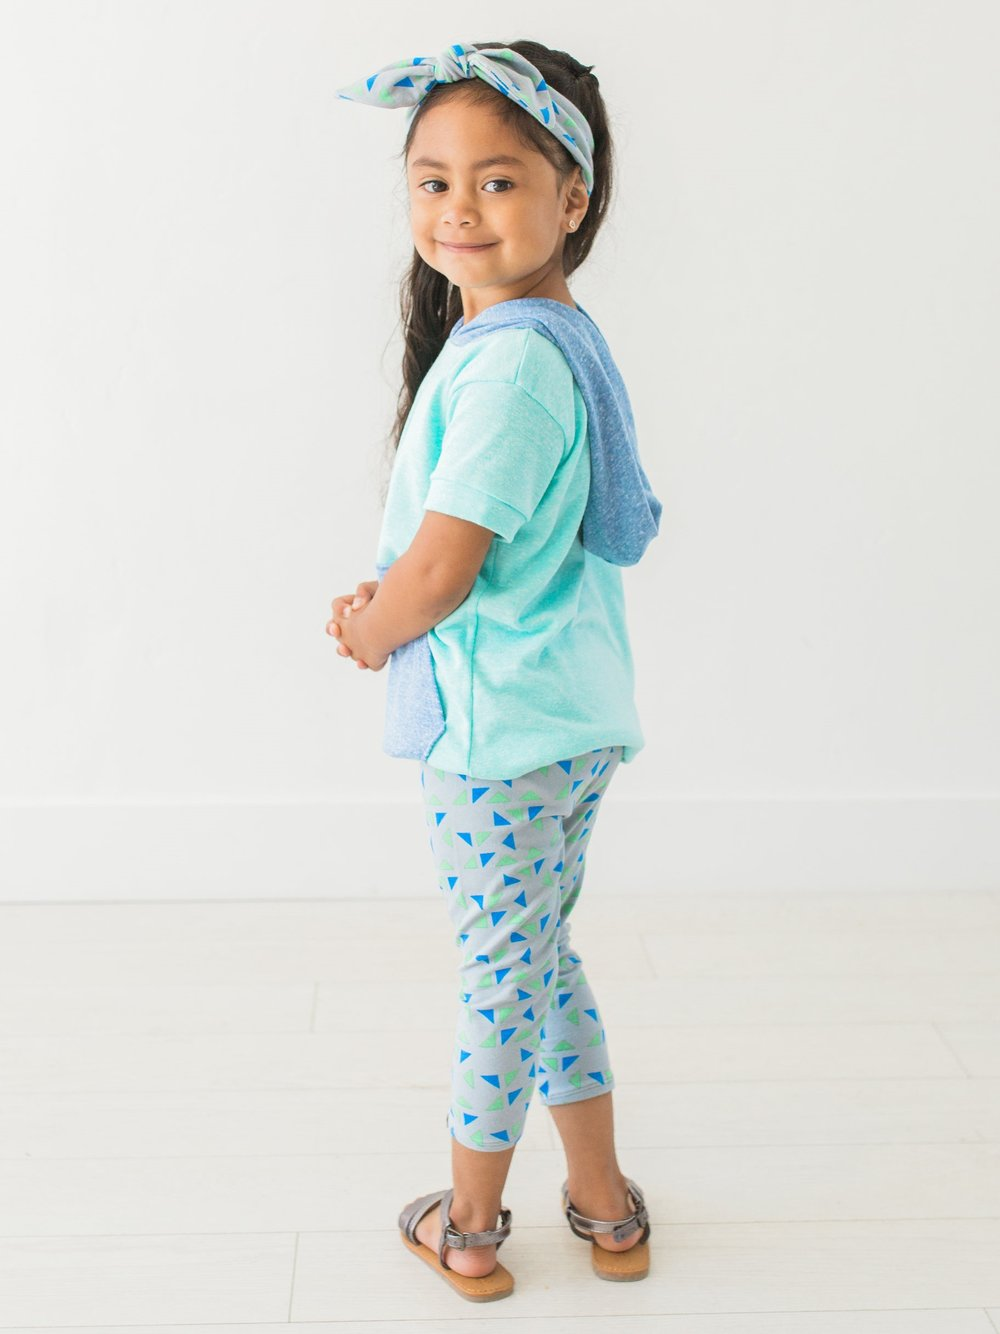 PARADISE KIDS CLOTHING-0323.jpg